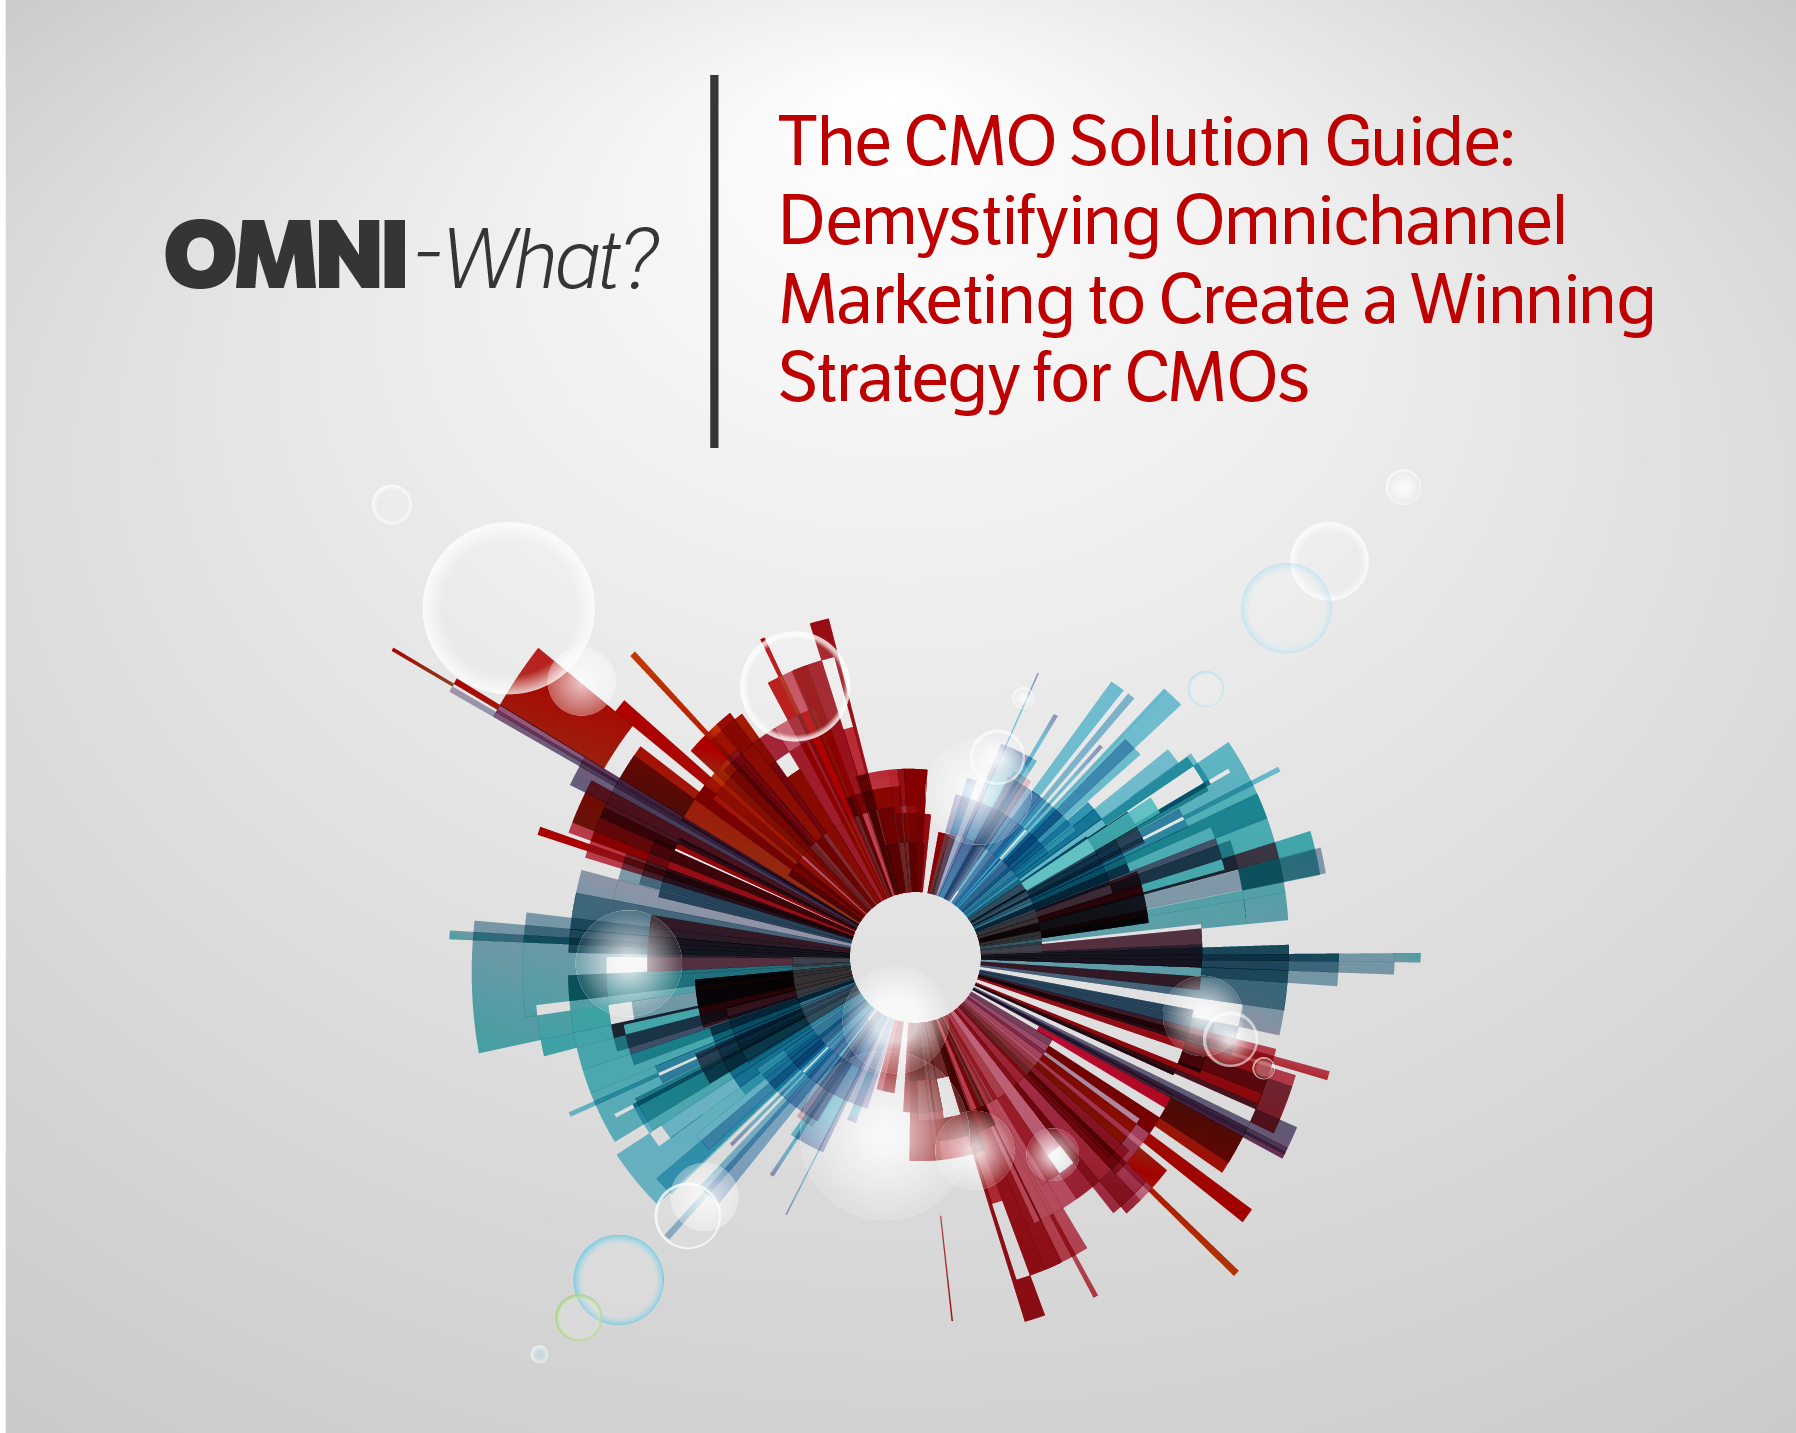 cmo_guide_landing_page_image-01-01.png